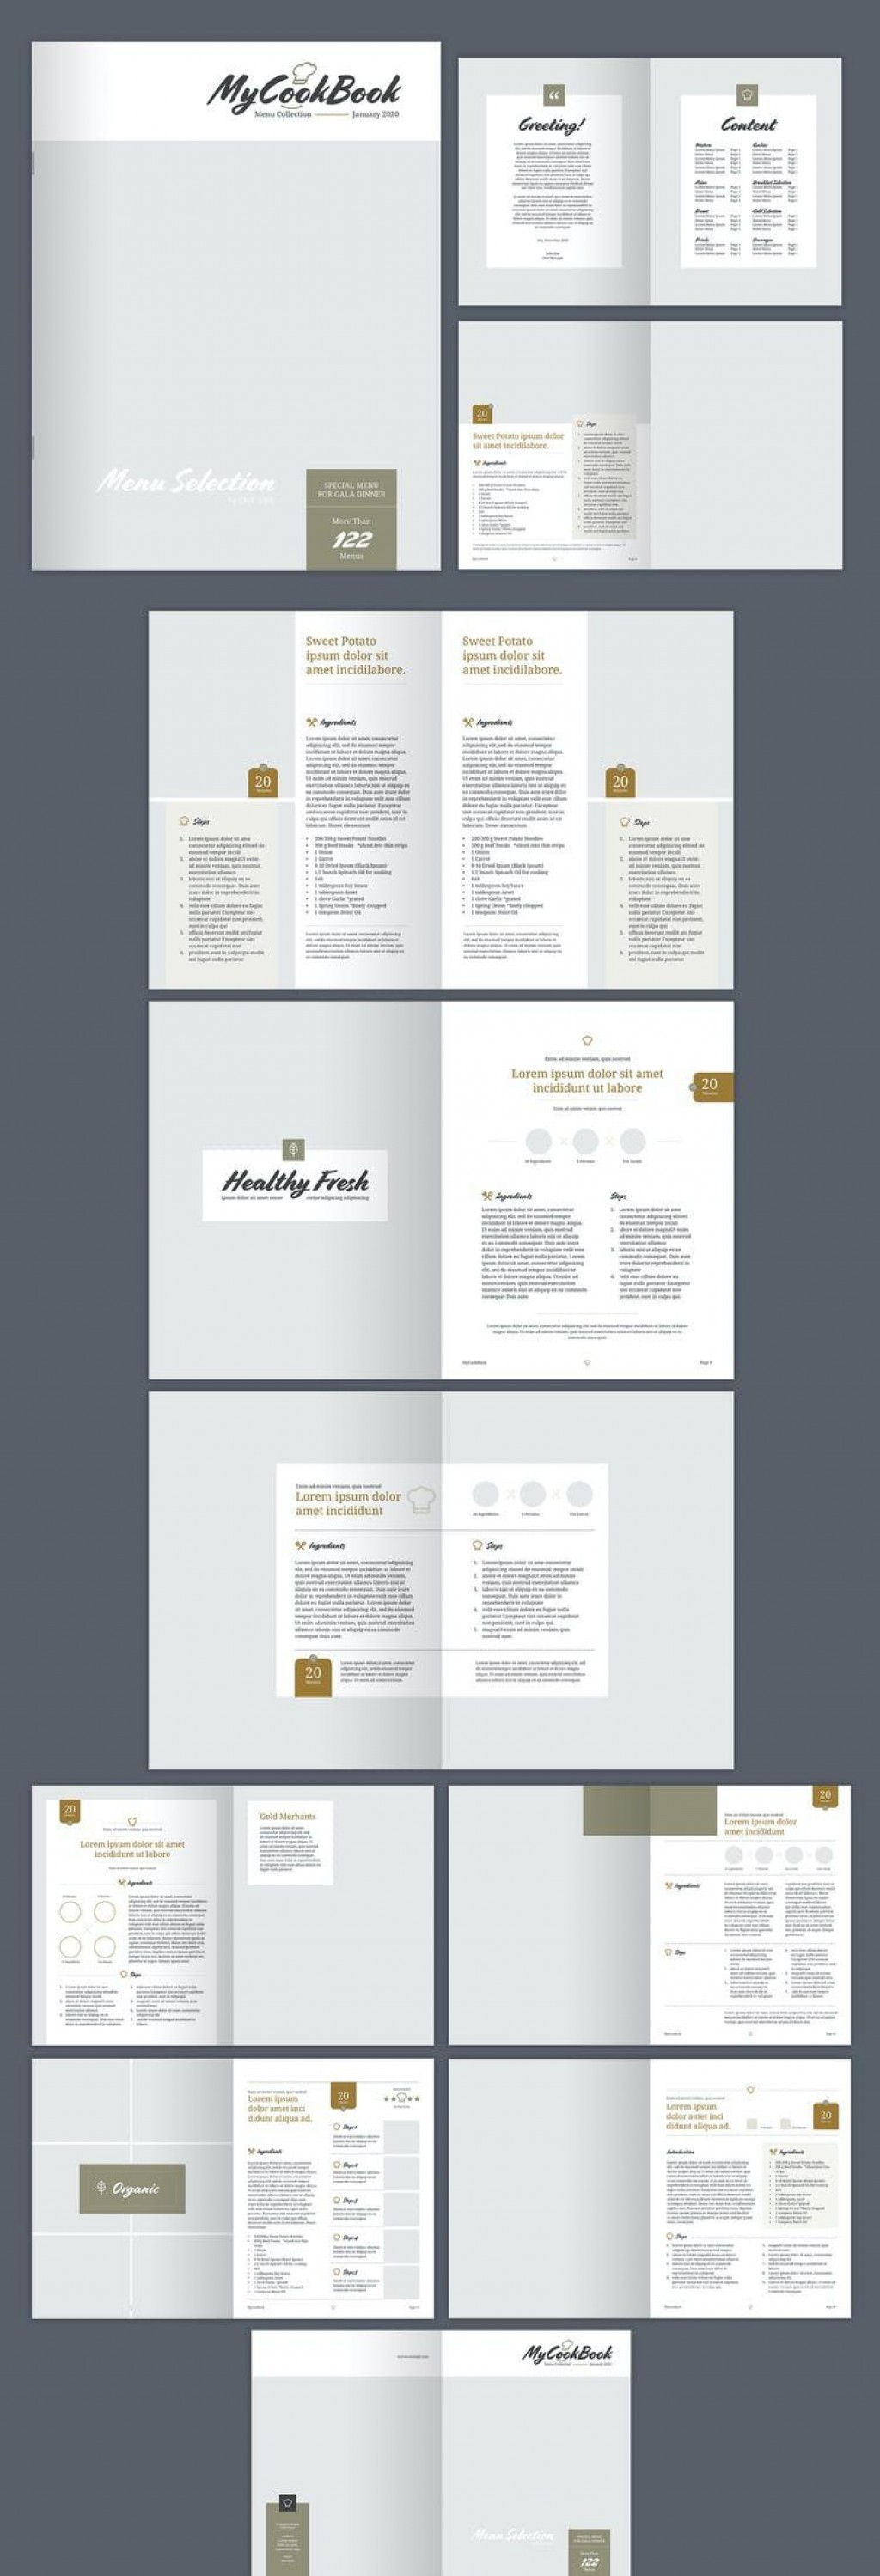 005 Unusual Indesign Book Layout Template Highest Quality  Free DownloadLarge